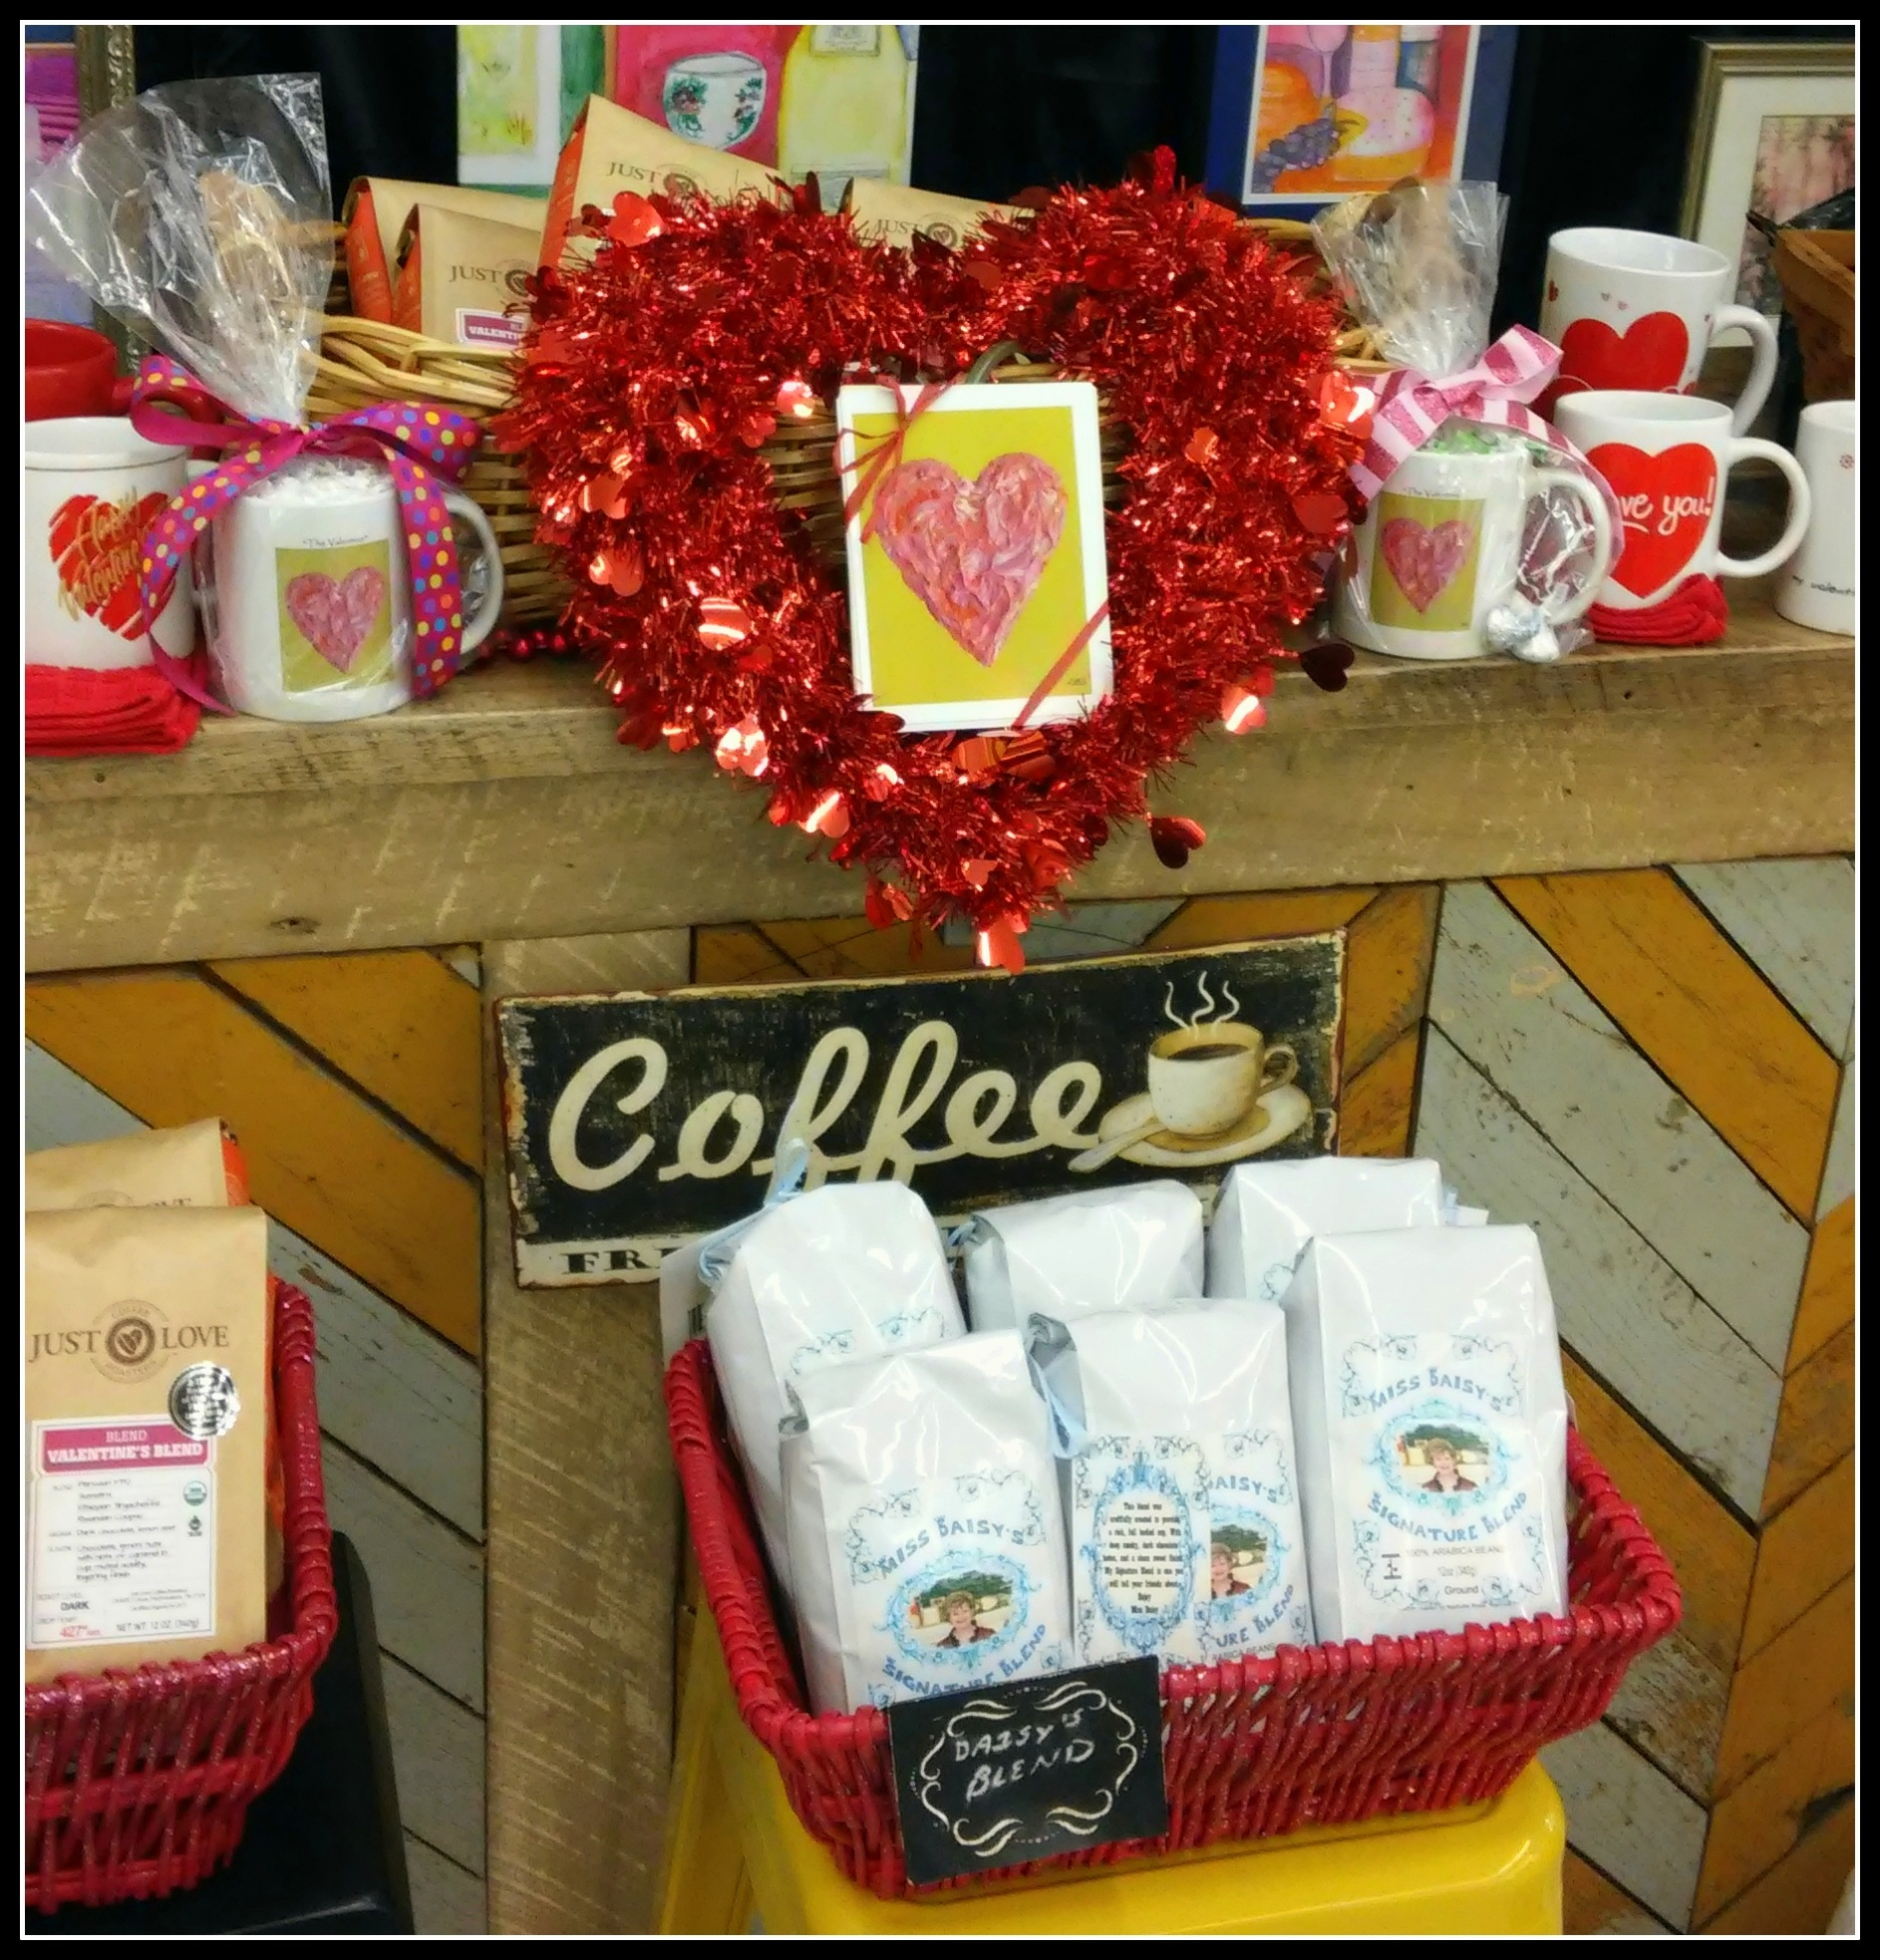 "Miss Daisy's New Coffee Blend is delicious inside ""The Valentine"" coffee cup! Try Daisy's Blends today!!! Grassland's Foodland Market, Franklin, TN."